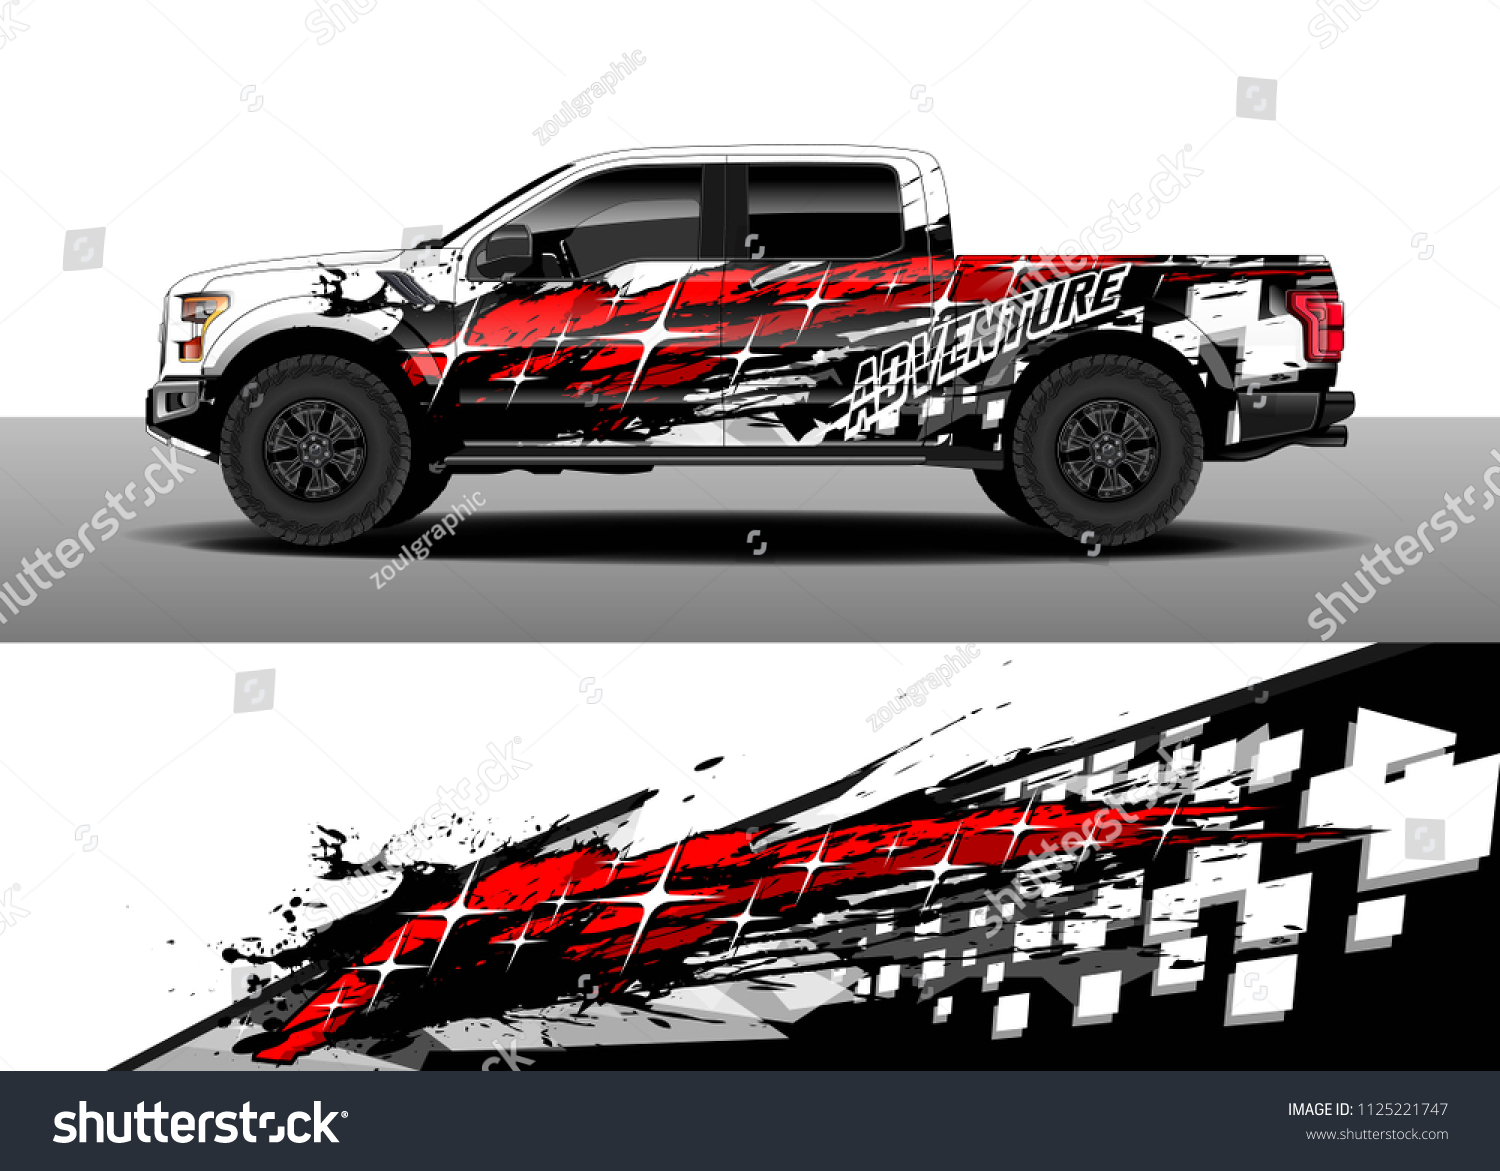 Truck and car decal wrap vector graphic abstract racing stripe designs for wrap vehicle